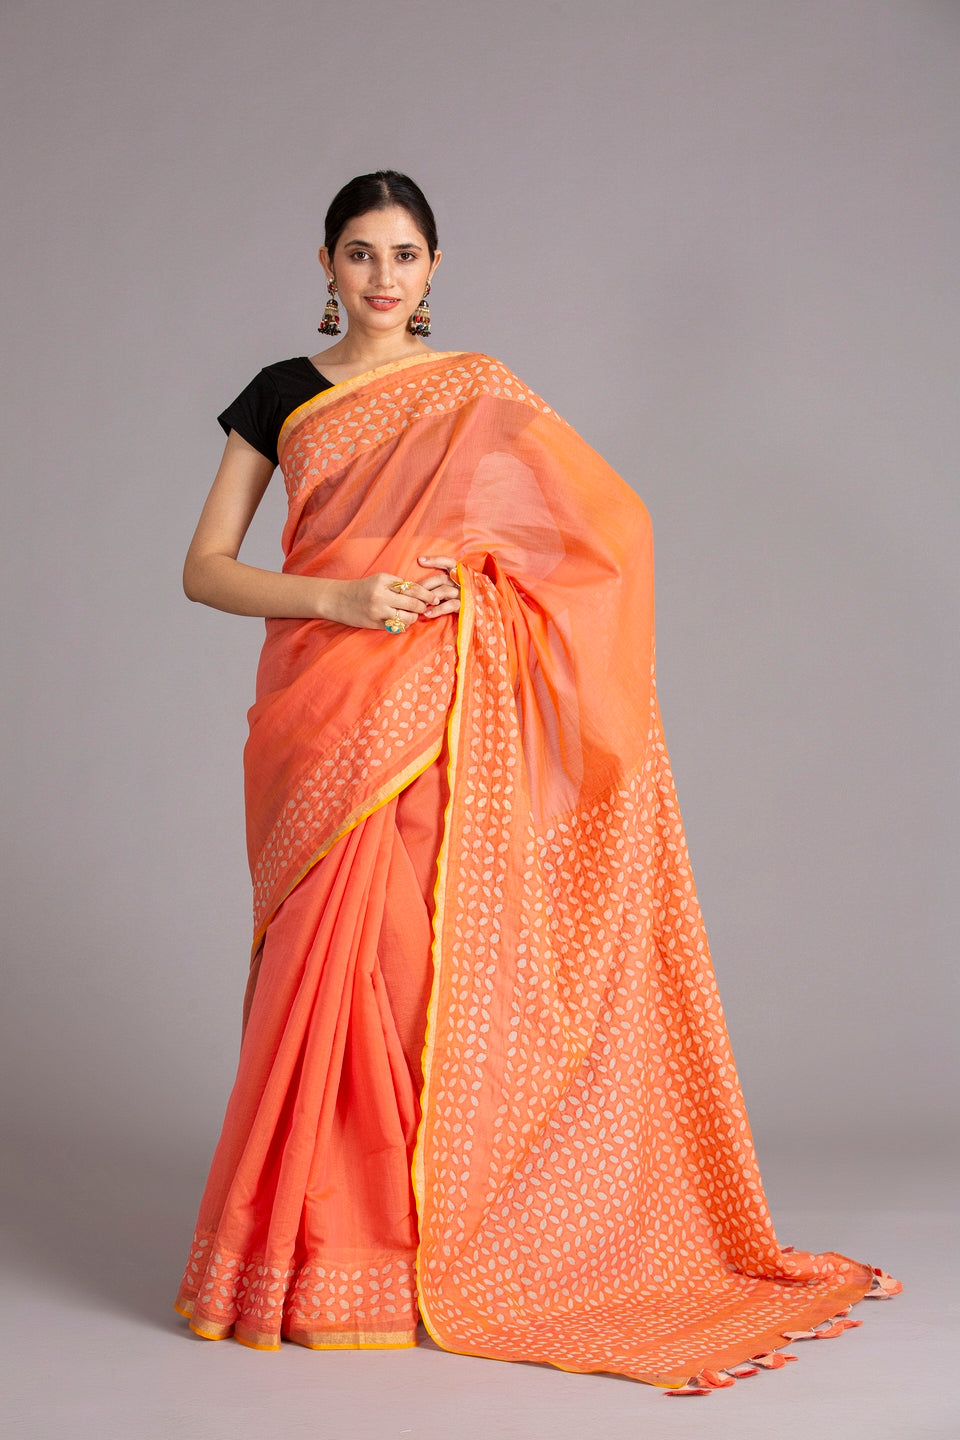 Khuddi Motif Chanderi Applique Saree, Peach